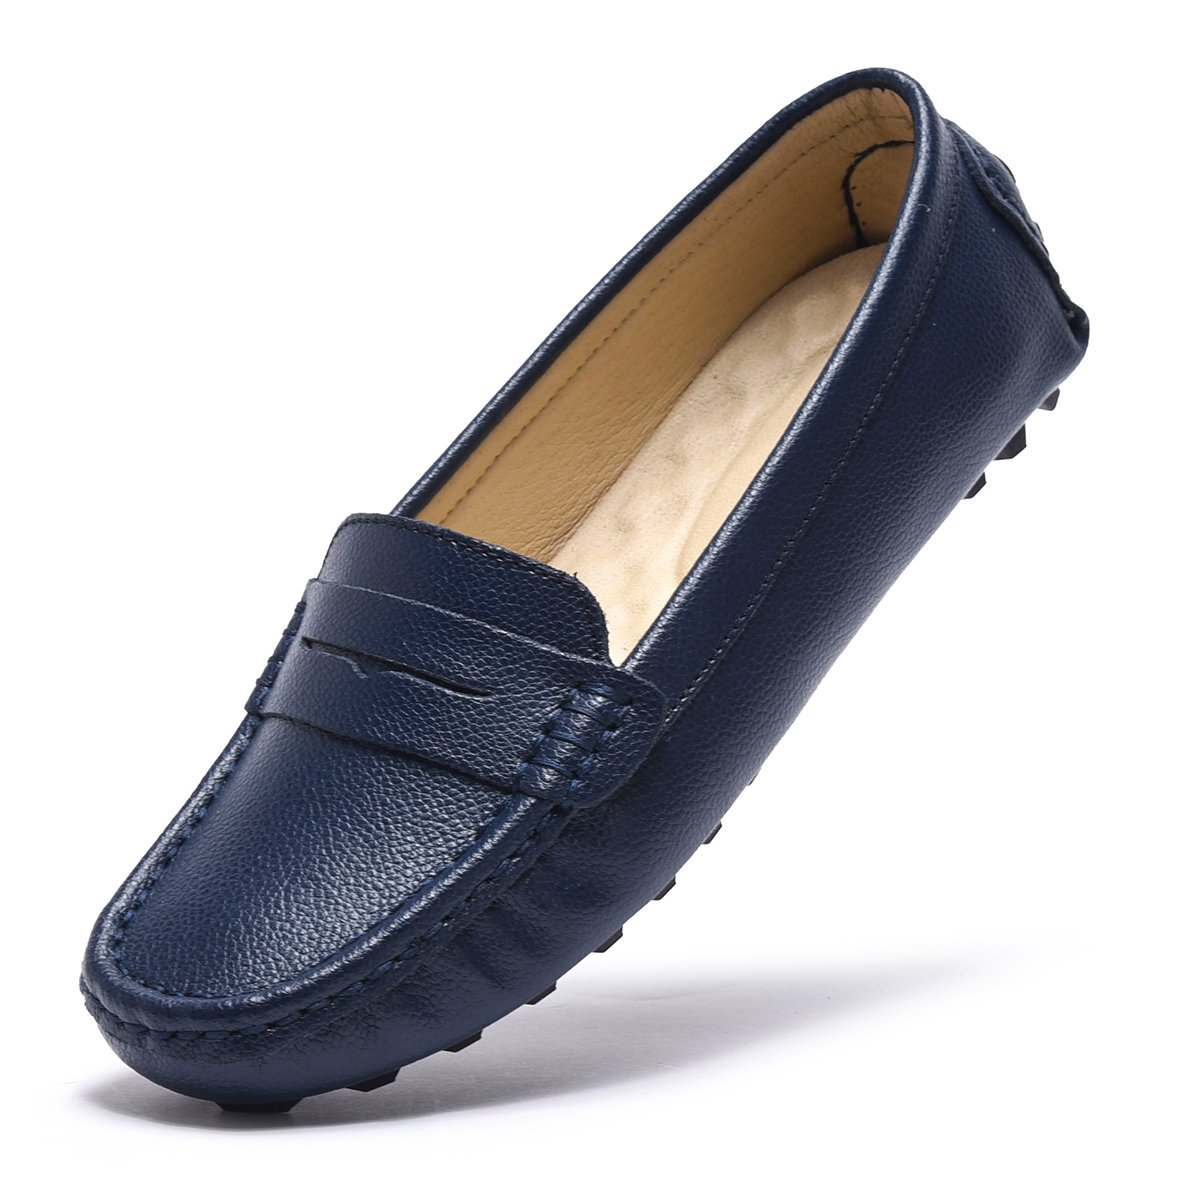 ARTISURE Women's Girls' Classic Handsewn Blue Genuine Leather Penny Loafers Driving Moccasins Casual Boat Shoes Slip On Fashion Office Comfort Flats 9 M US SKS-1221LAN90